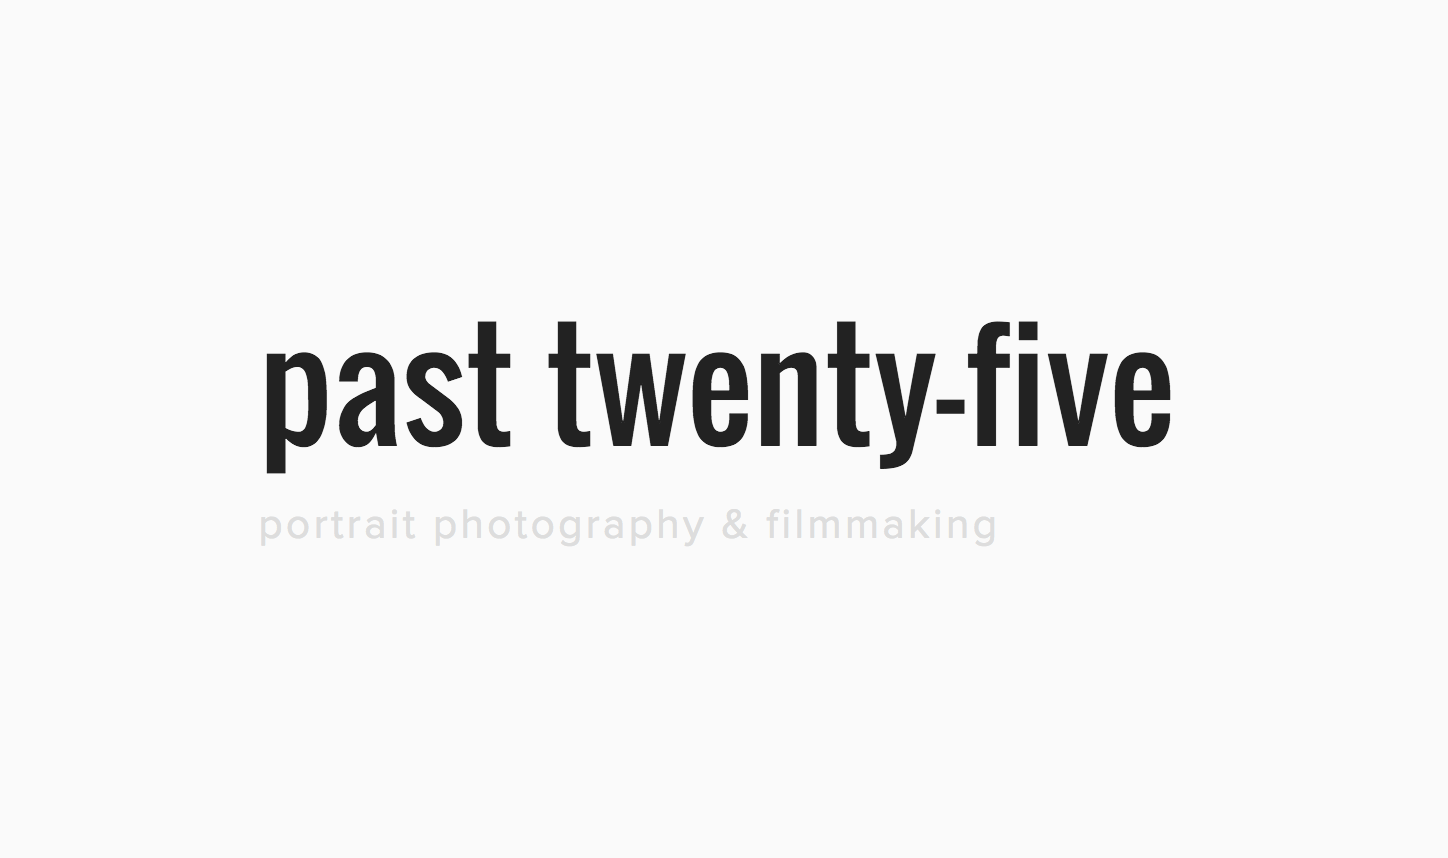 past twenty-five – Foto und Video